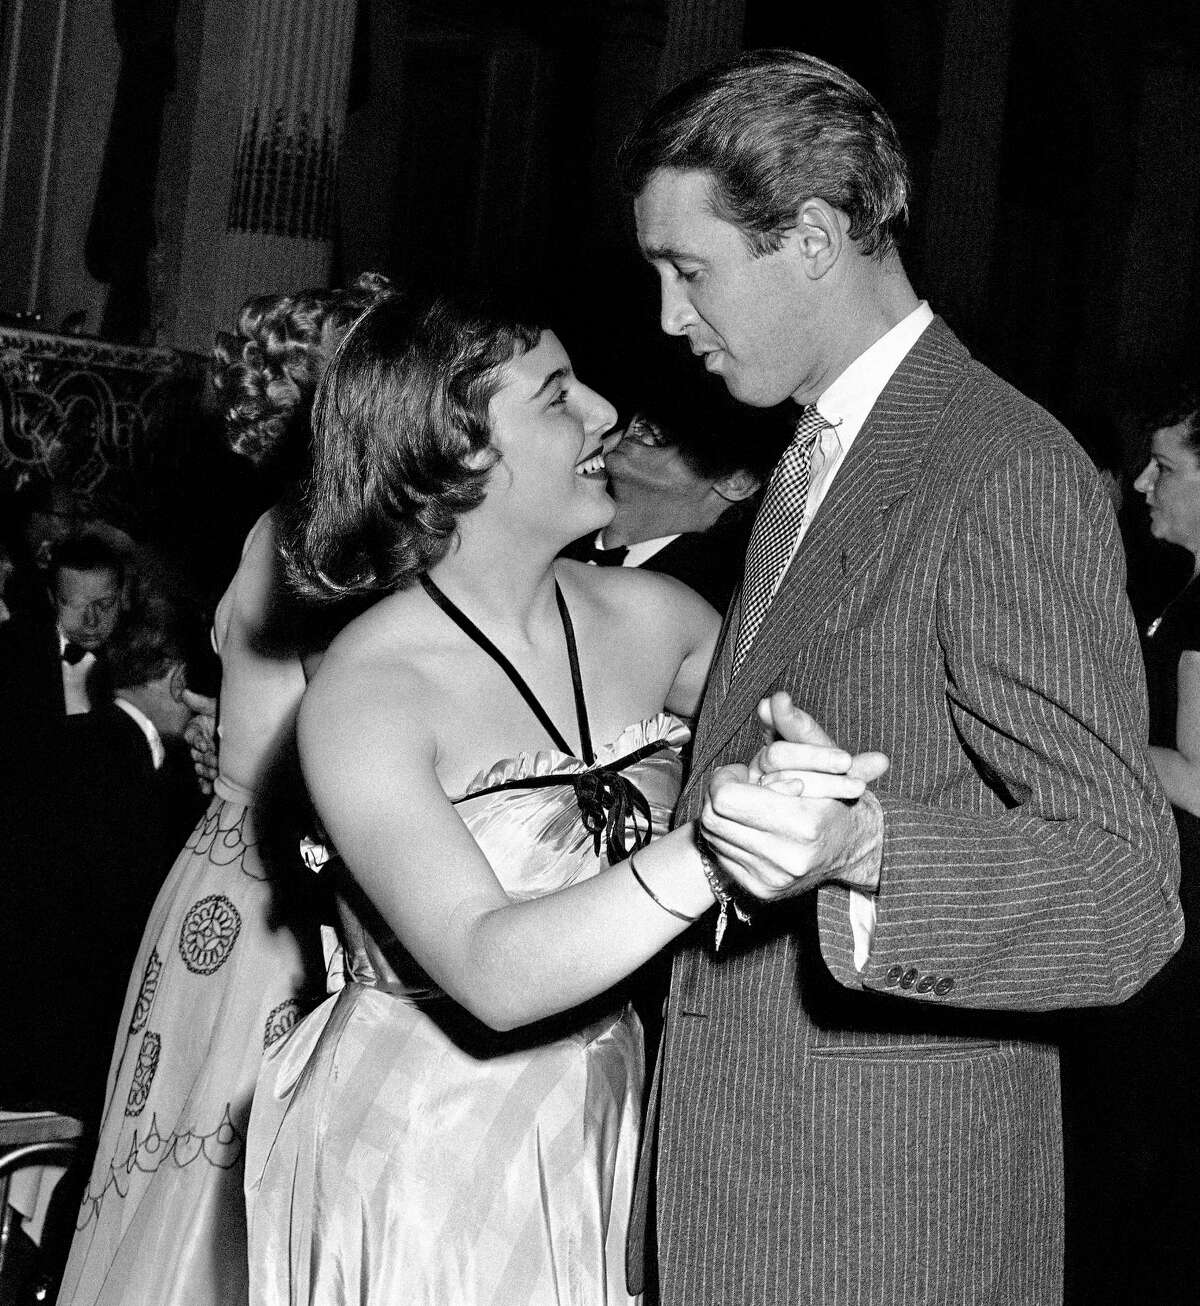 FILE - In this April 1, 1943 file photo, movie star Jimmy Stewart dances with Mary Rodgers at the